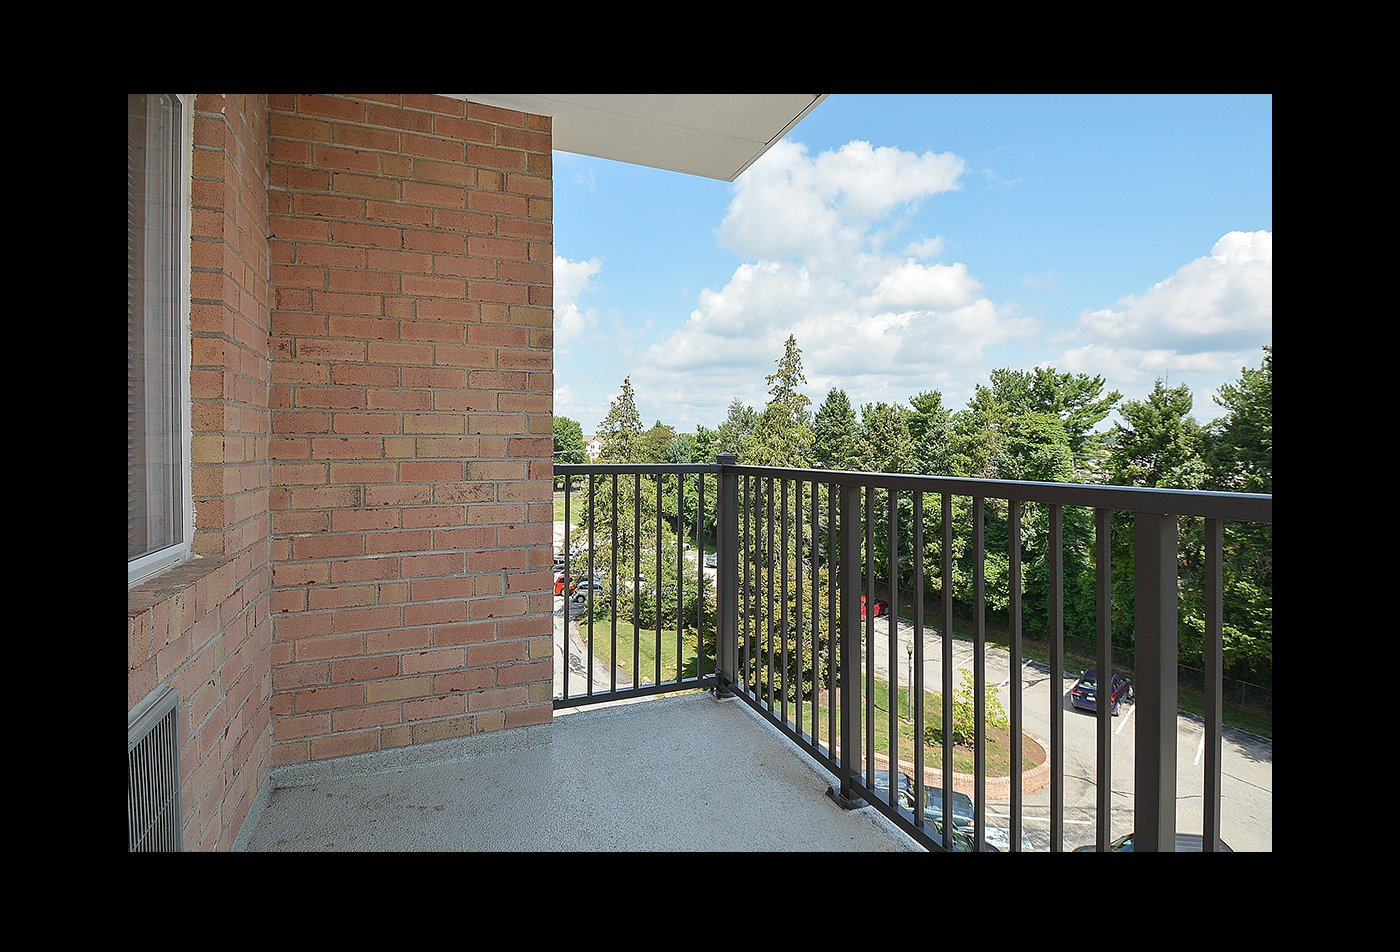 Spacious Apartment Balcony | East Norriton PA Apartments For Rent | Norriton East Apartments